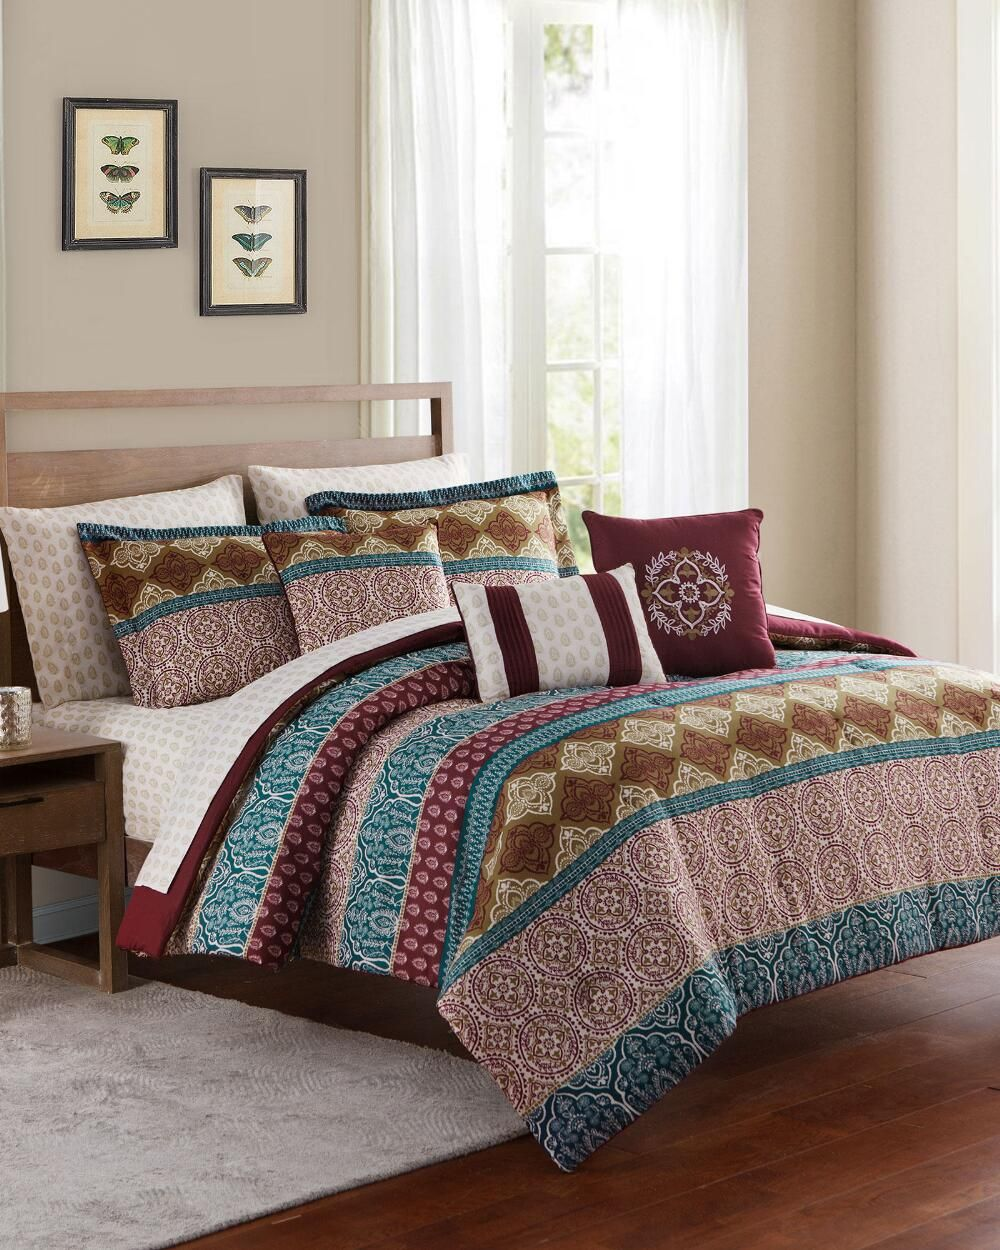 Discount Beds In A Bag King Queen Full Sizes Stein Mart Comforter Sets Bed Comforter Sets Luxury Bedding Sets Bed in a bag sale